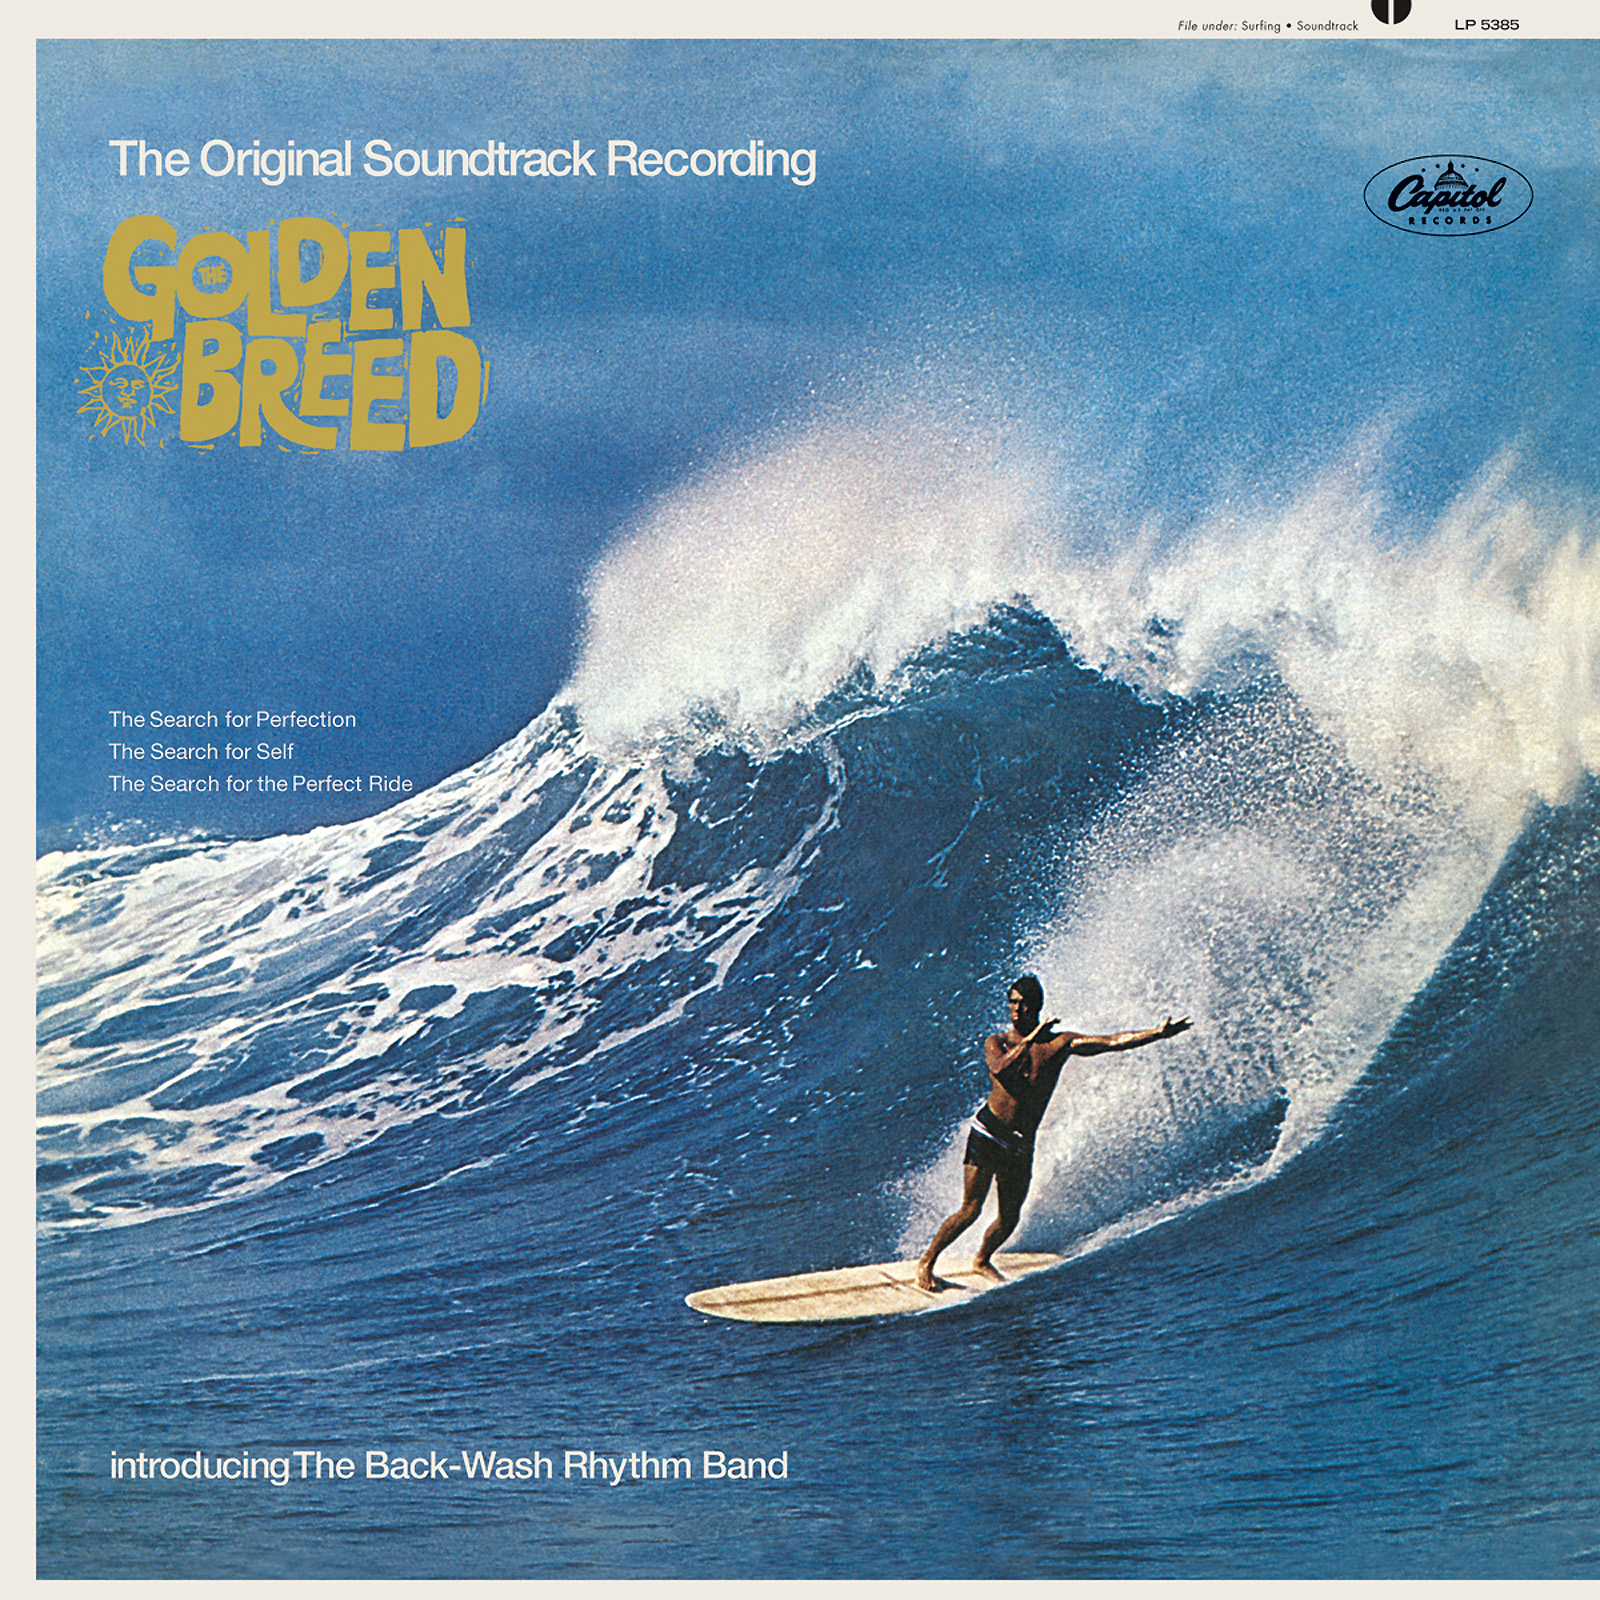 Allan, Davie - Golden Breed Original Soundtrack - LP